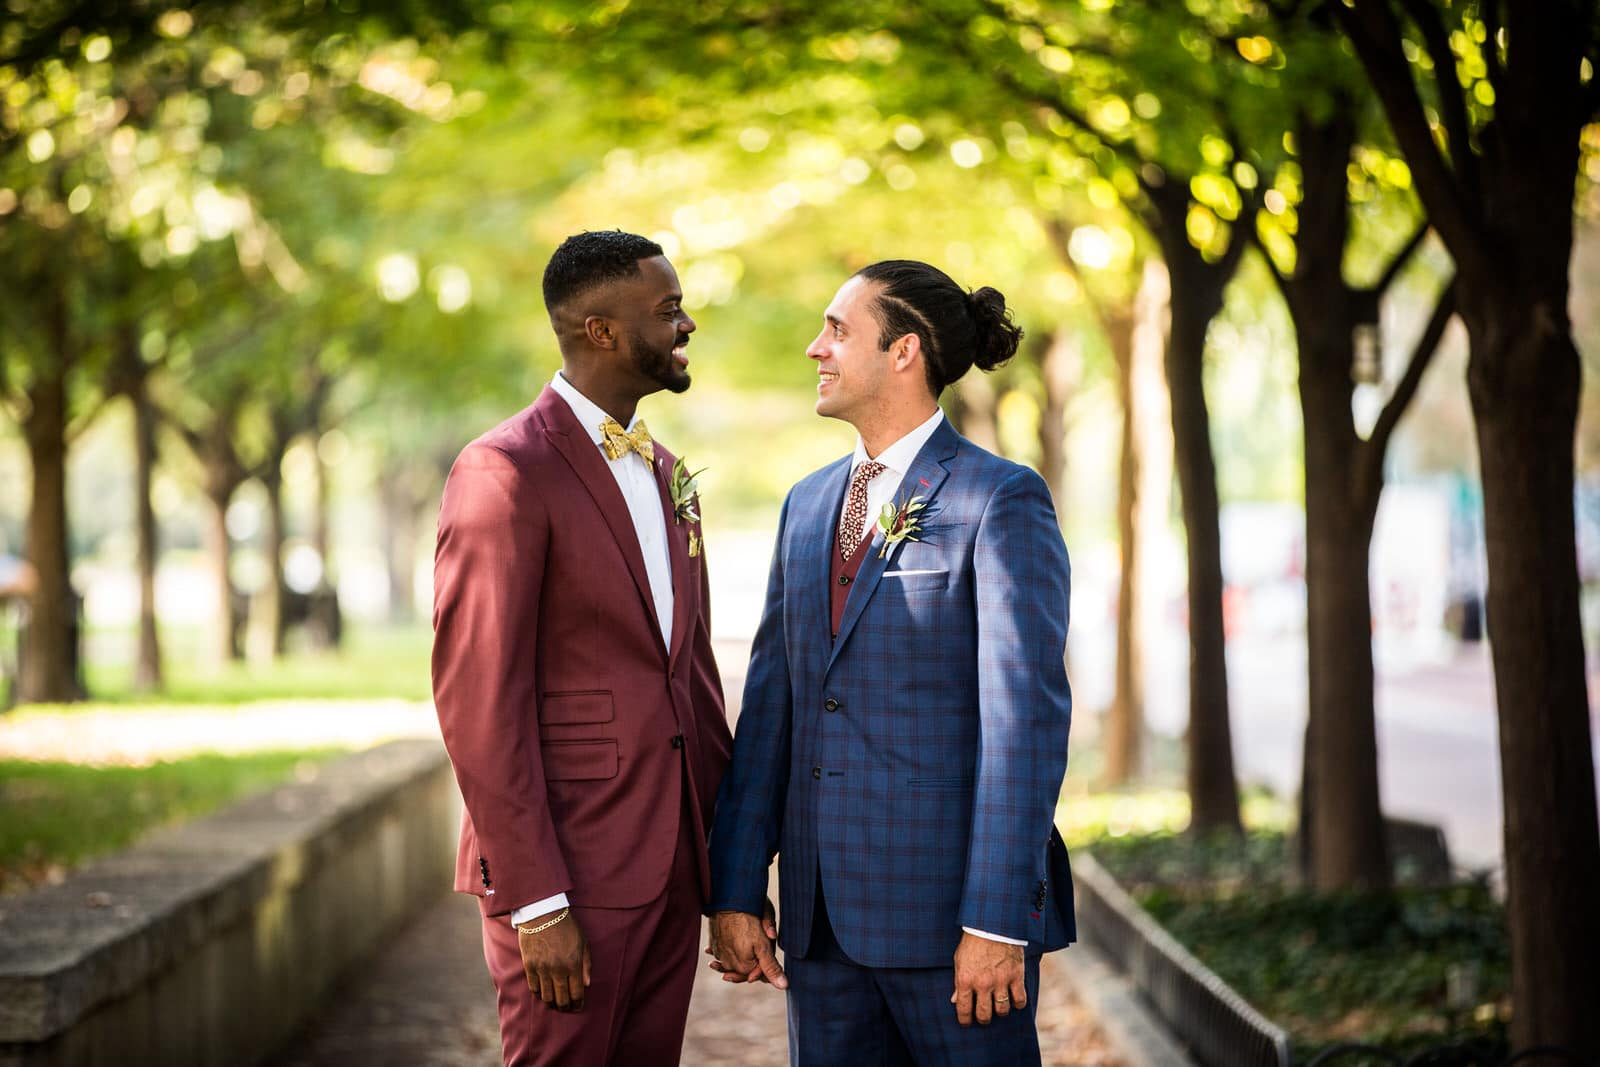 Brandon-Joseph-Franklin-Park-Conservatory-same-sex-wedding-photography-by-Columbus-Ohio-Amy-Ann-00062